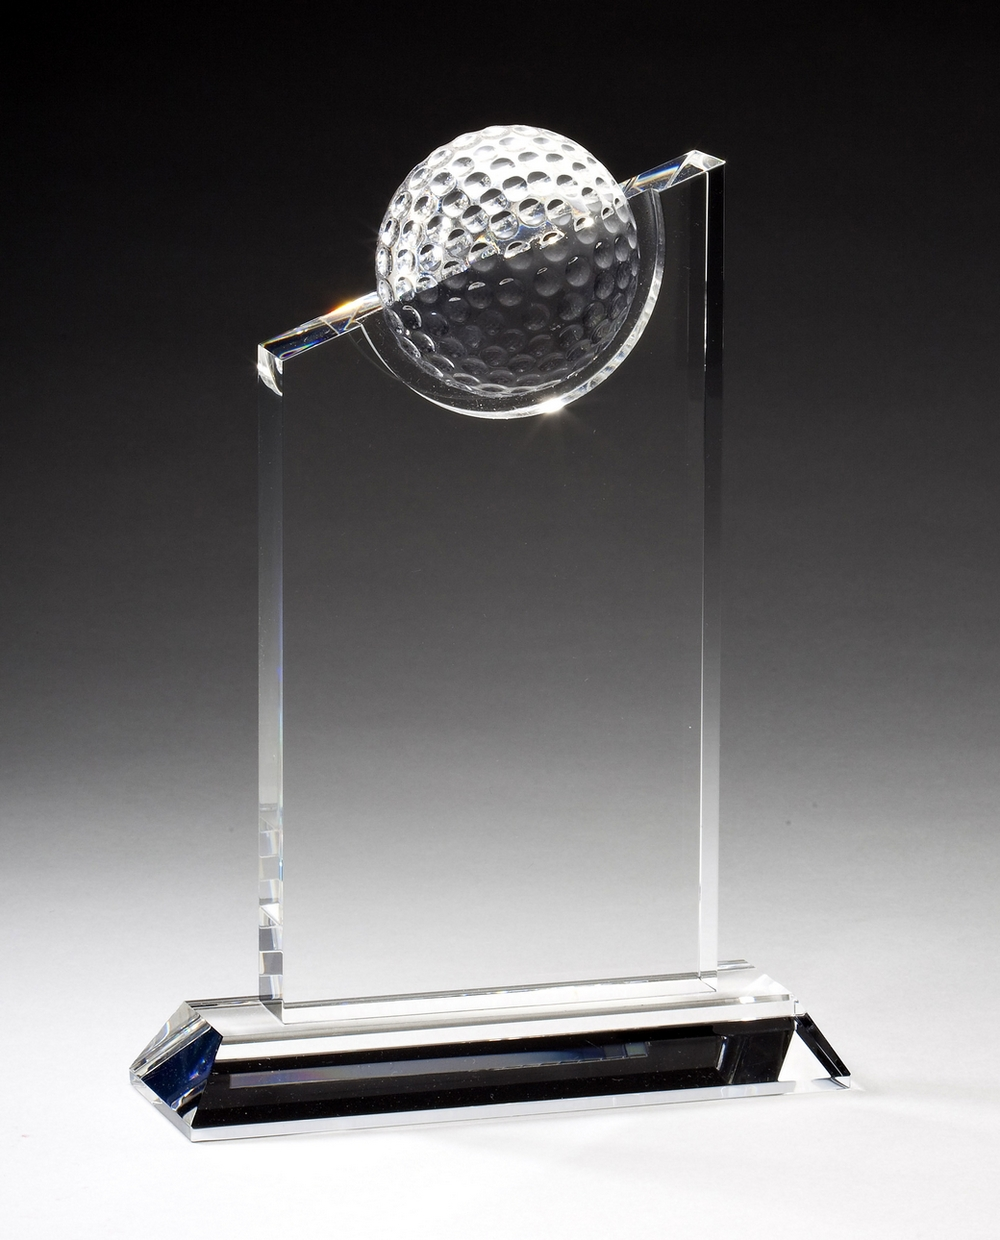 "Crystal Golf Peak Large: CRY182 - 9.5"" tall x 6"" wide - $105 Medium: CRY181 - 8"" tall x 6"" wide - $92 Small: CRY180 - 7.25"" tall x 5.5"" wide - $85"